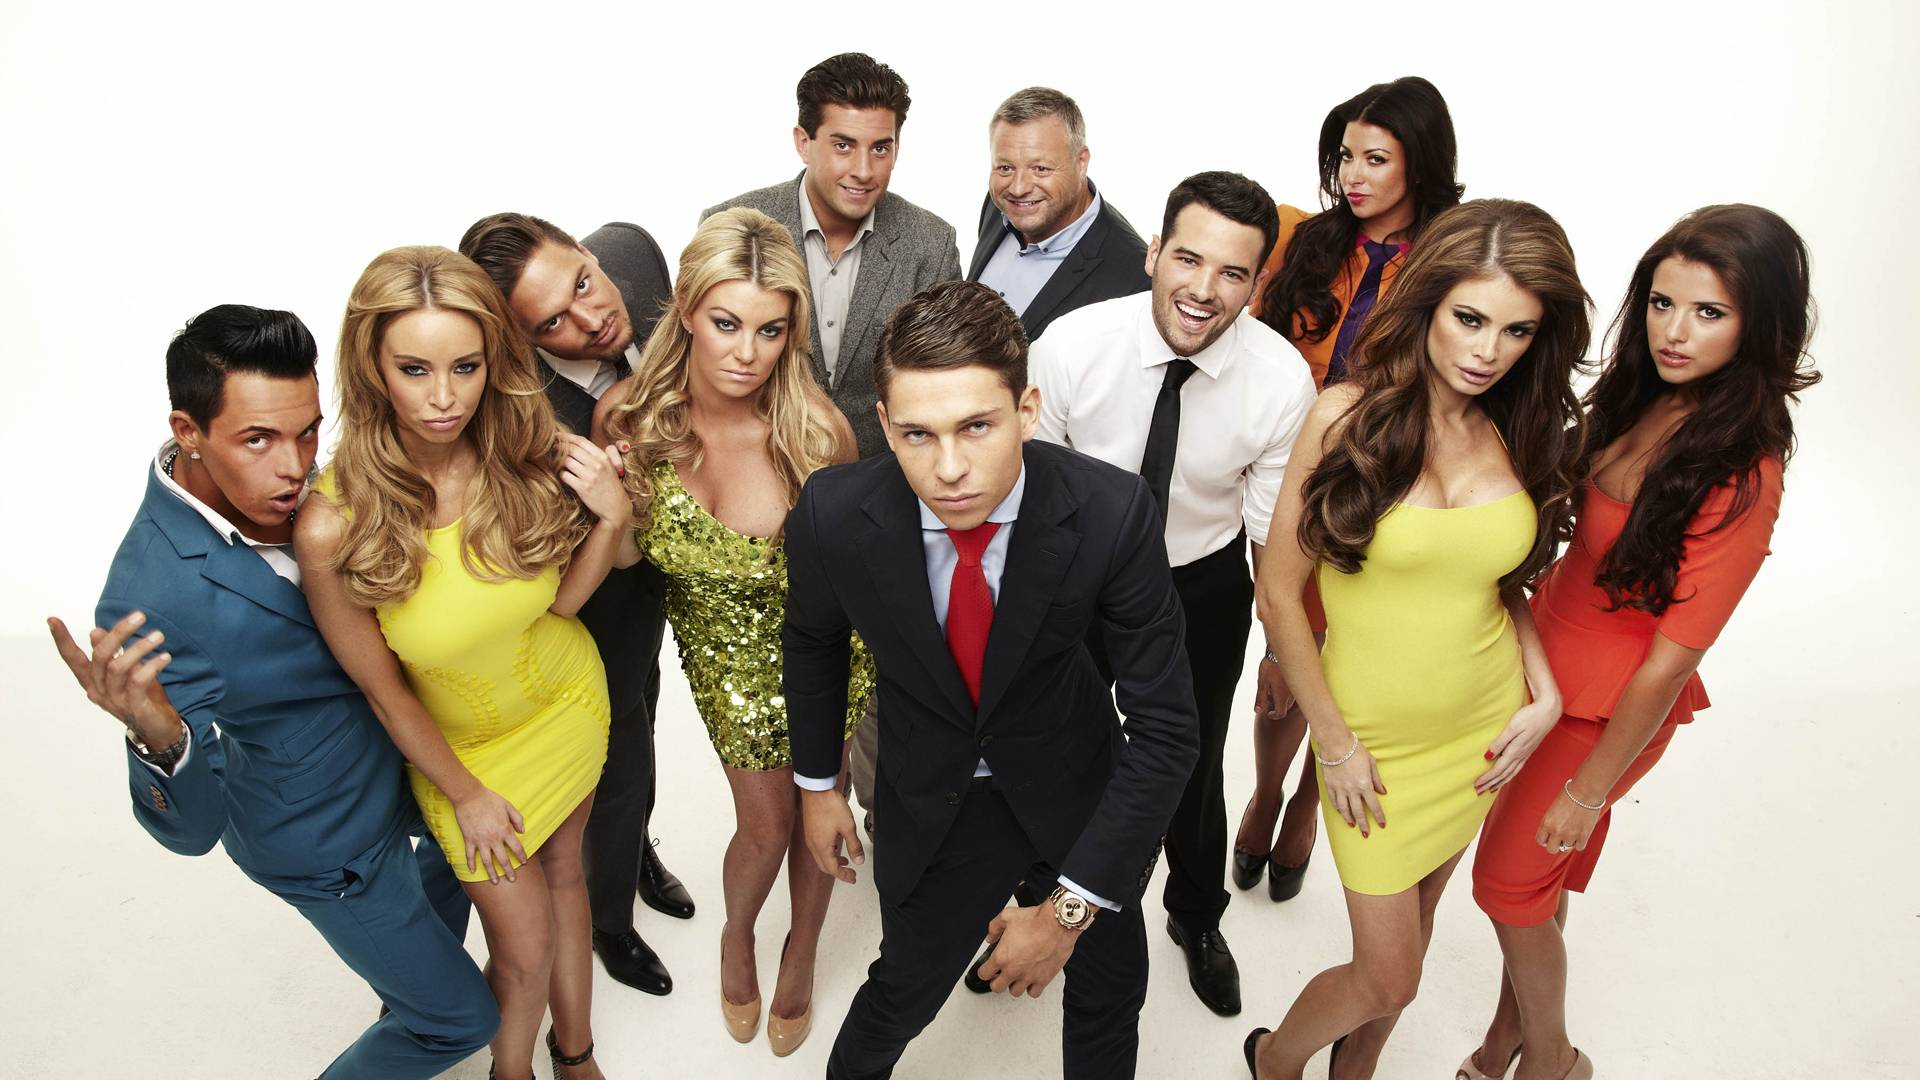 Watch the only way is essex photos 31